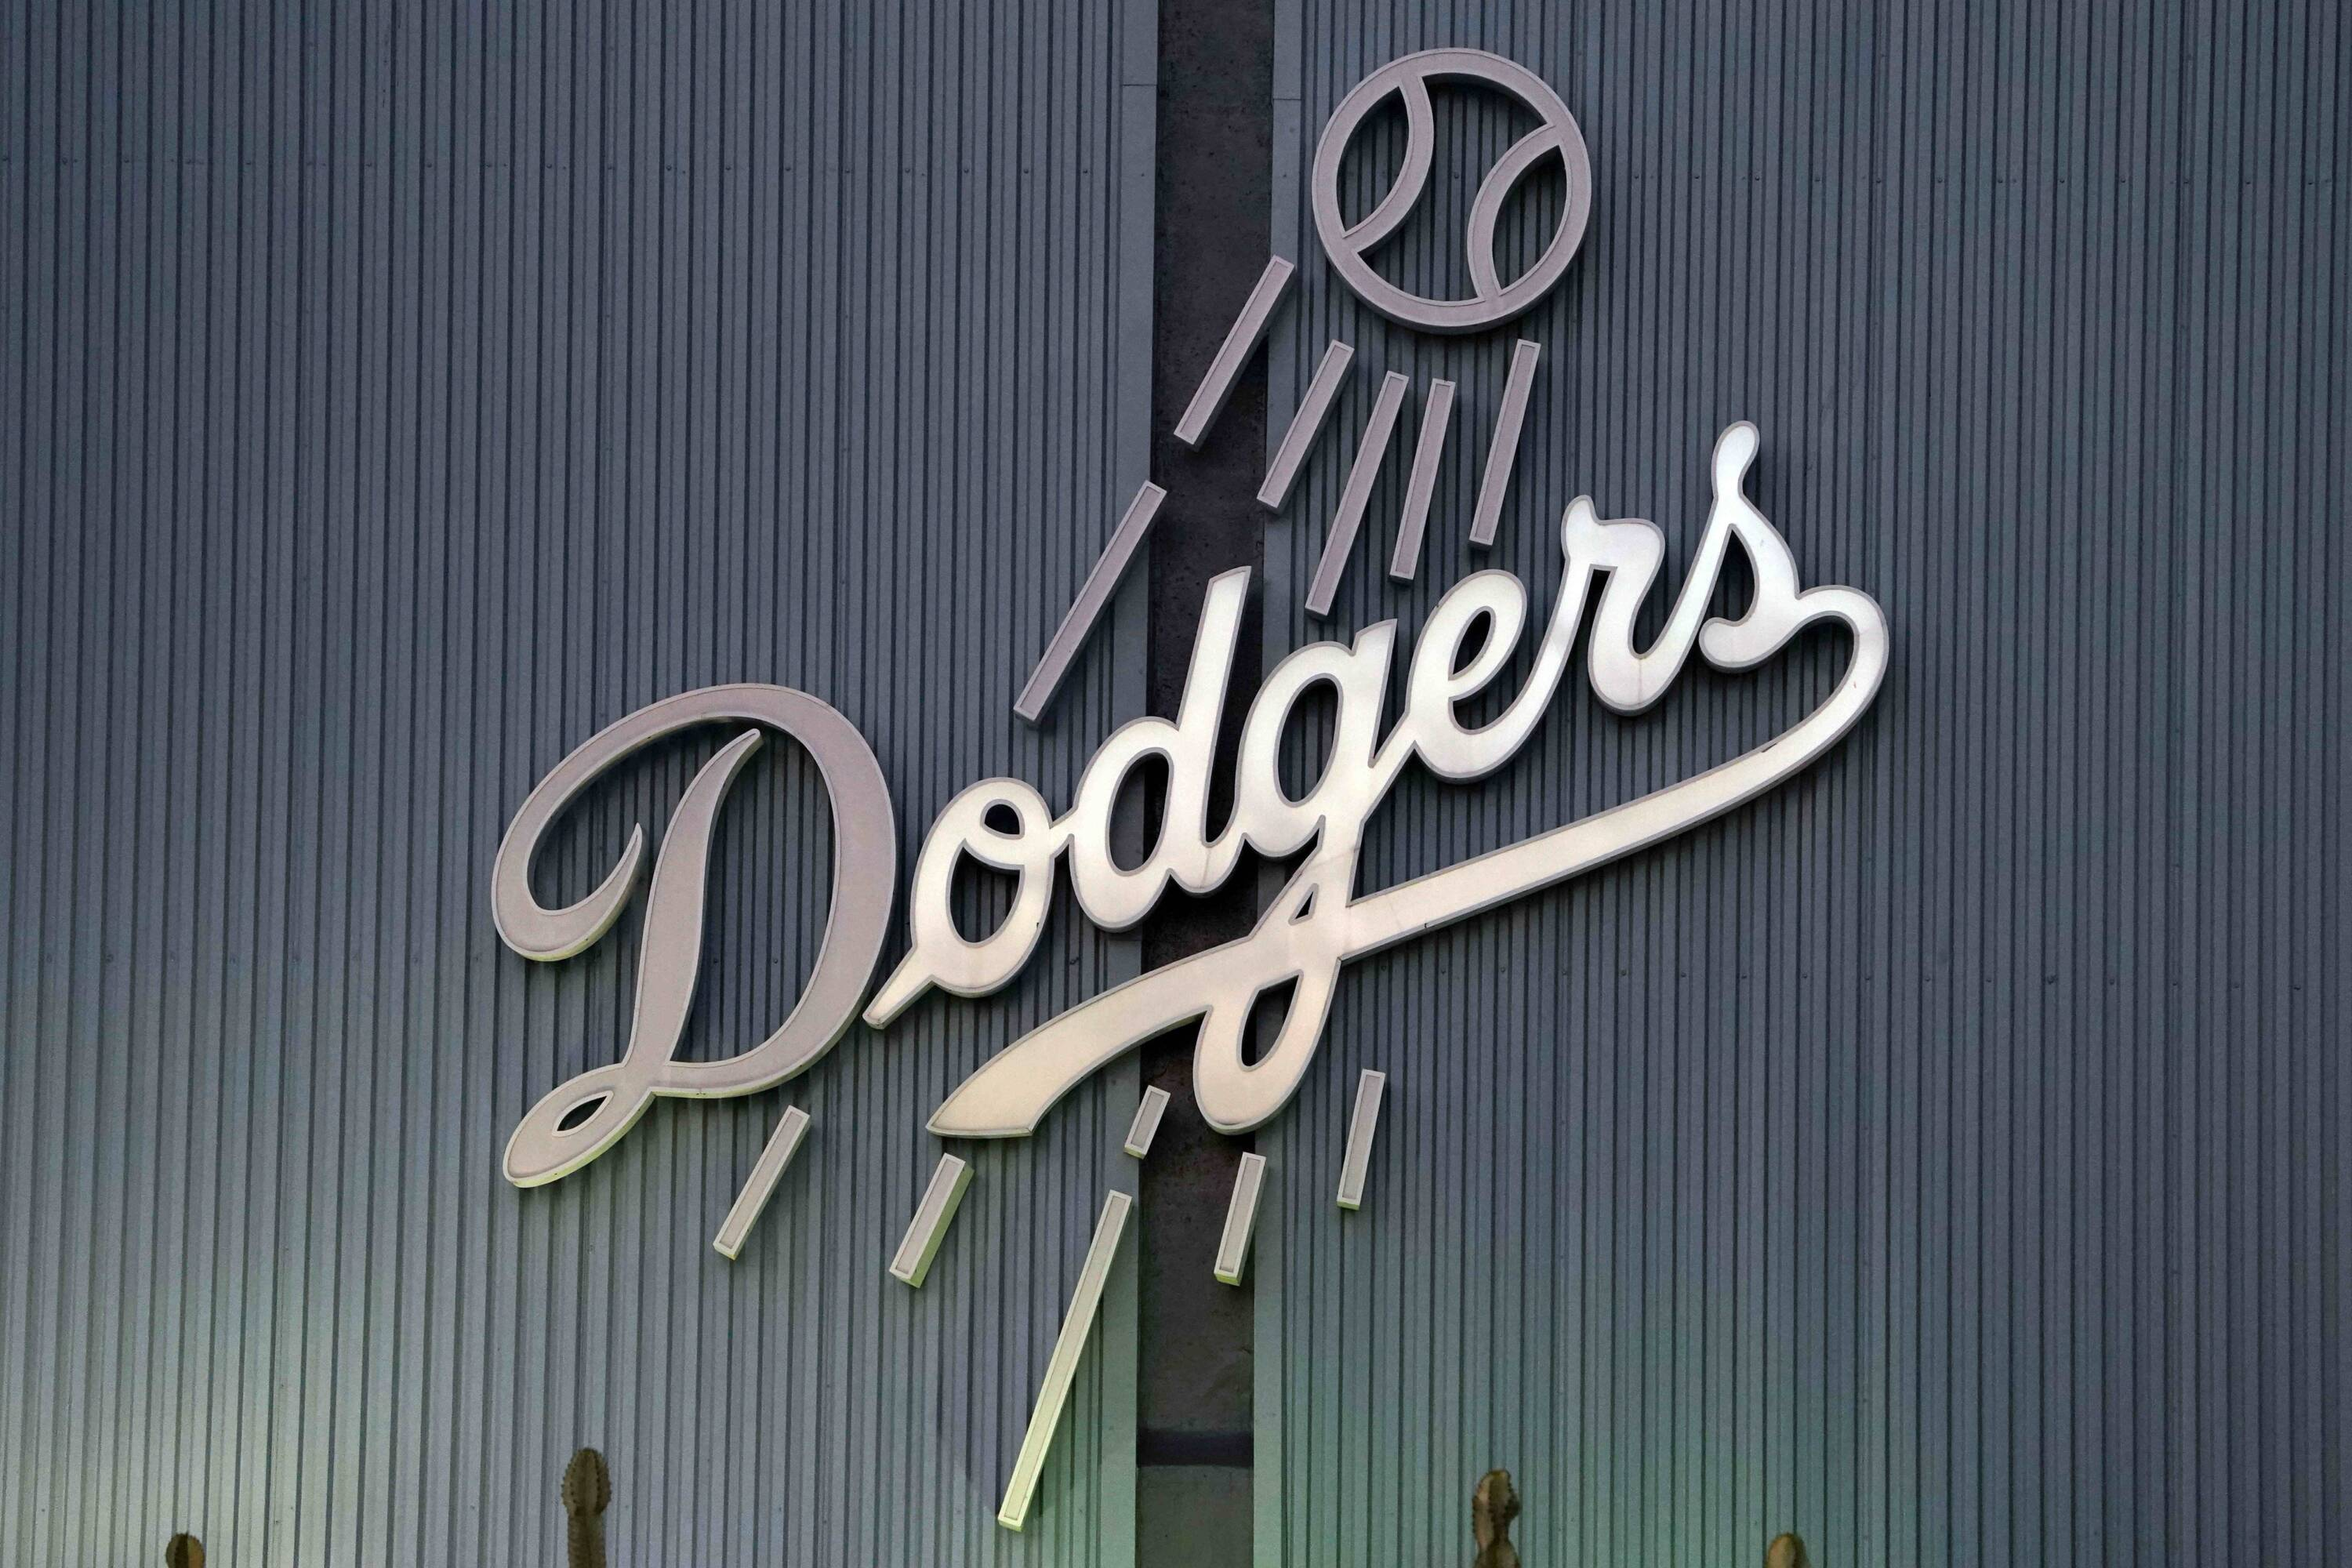 Dodgers: Walker Buehler Gets the Nod in Game 1 of the Playoffs Over Kershaw